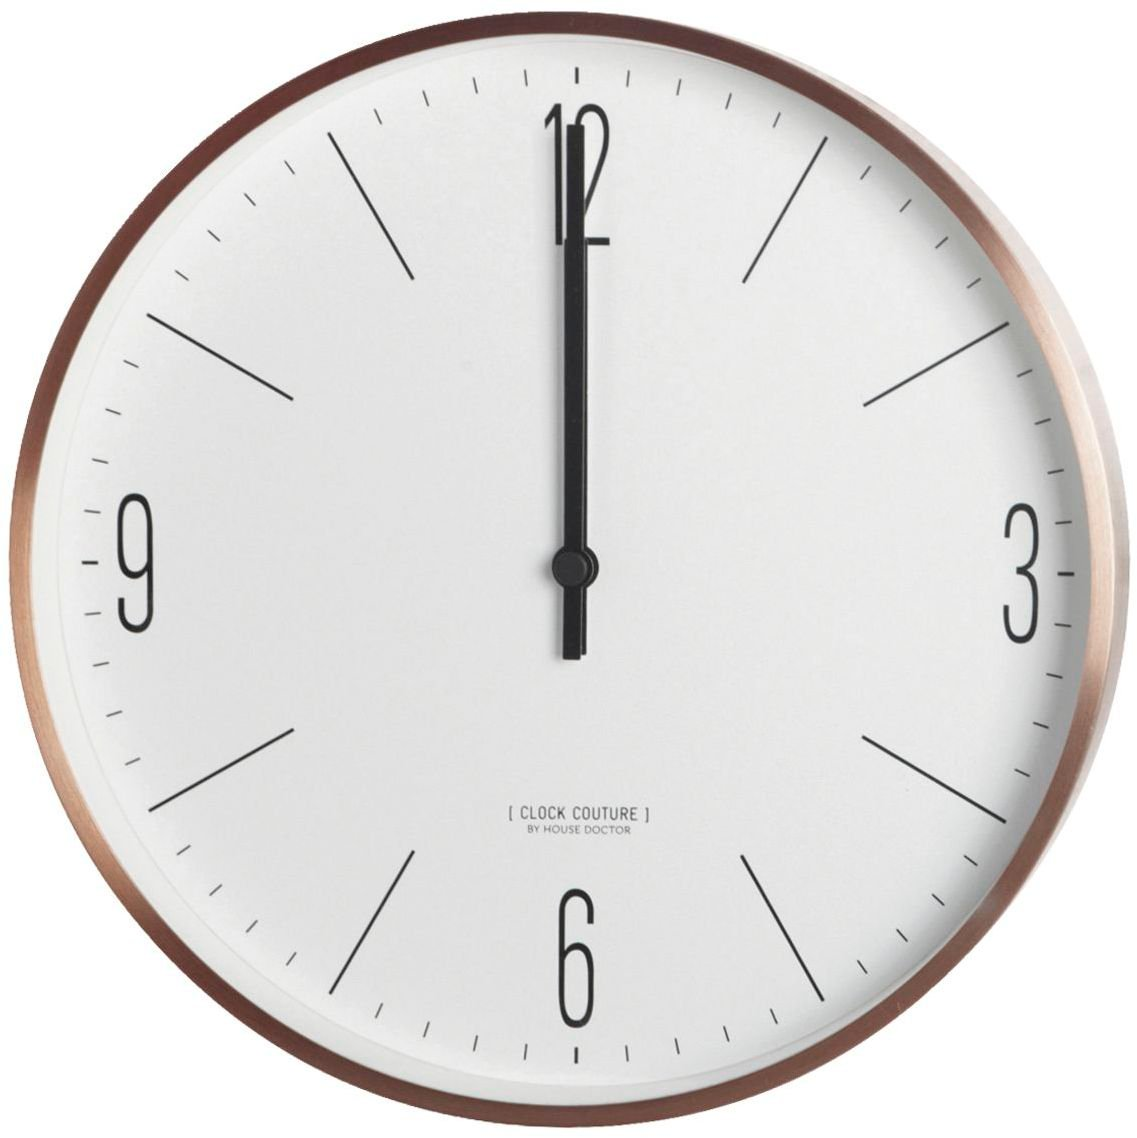 Image of   Clock Couture, Vægur, White by House Doctor (D: 30 cm., Guld/Hvid)